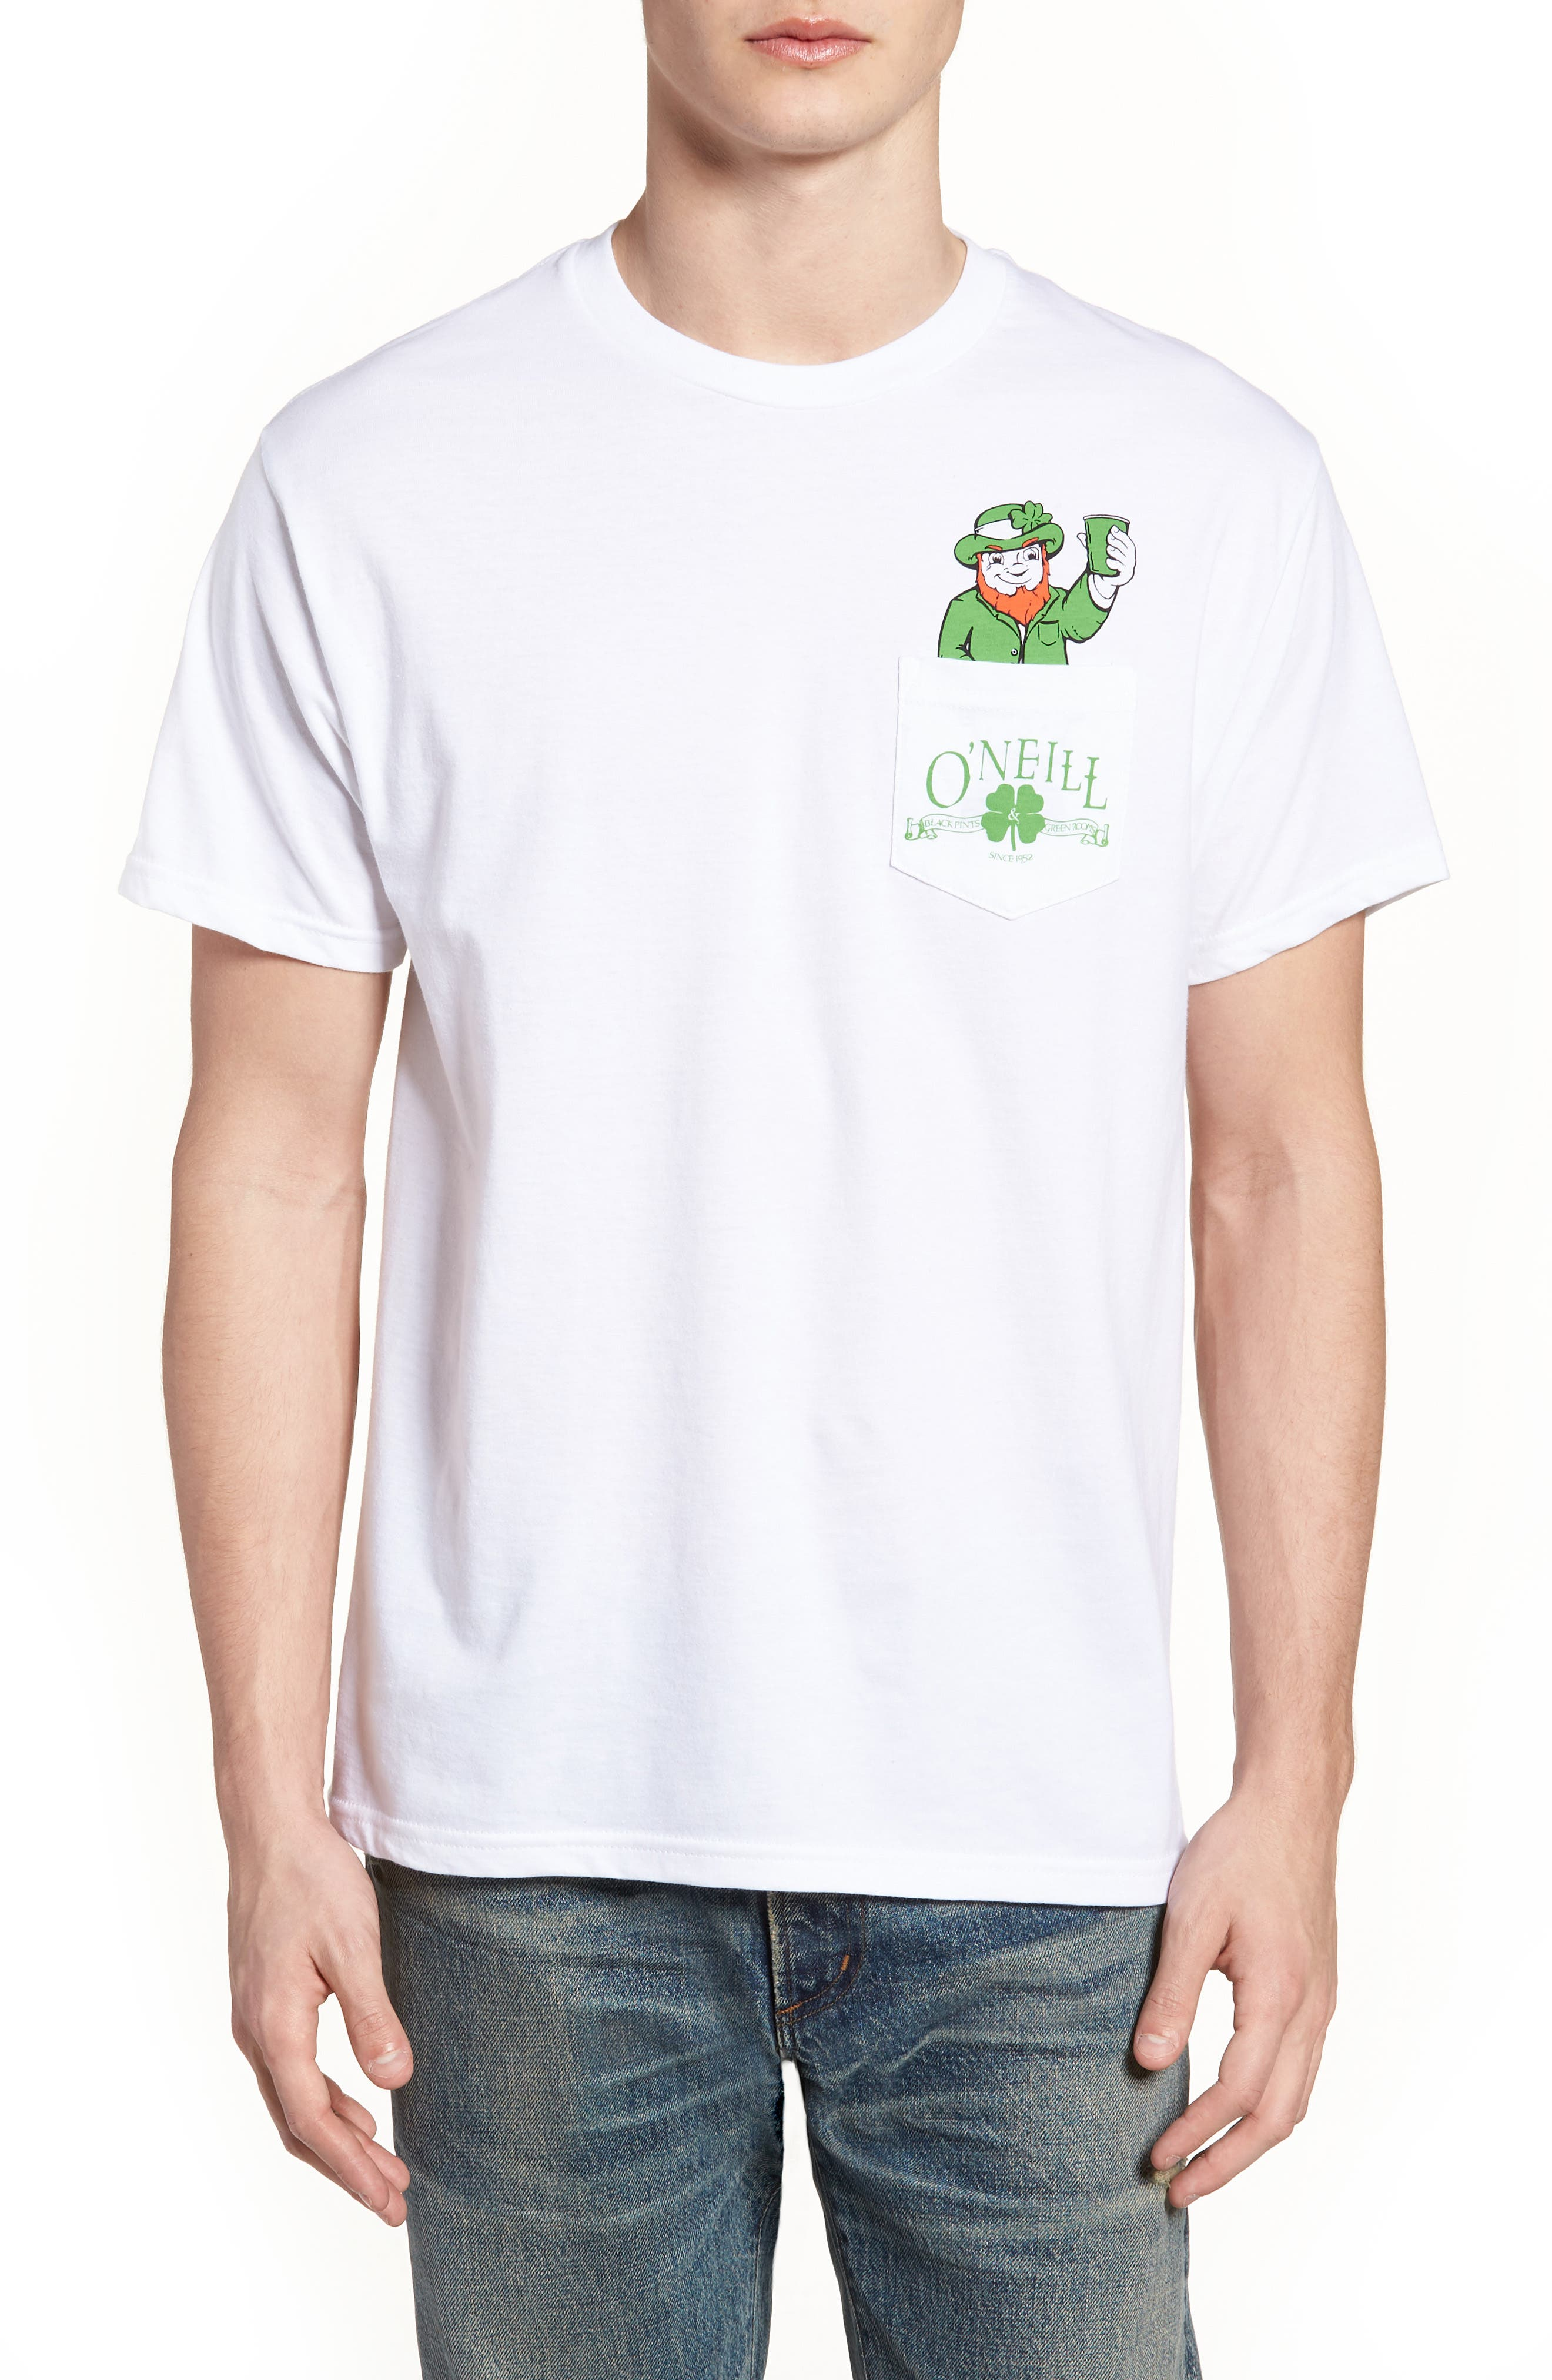 Shinanigans Graphic T-Shirt,                         Main,                         color, 100